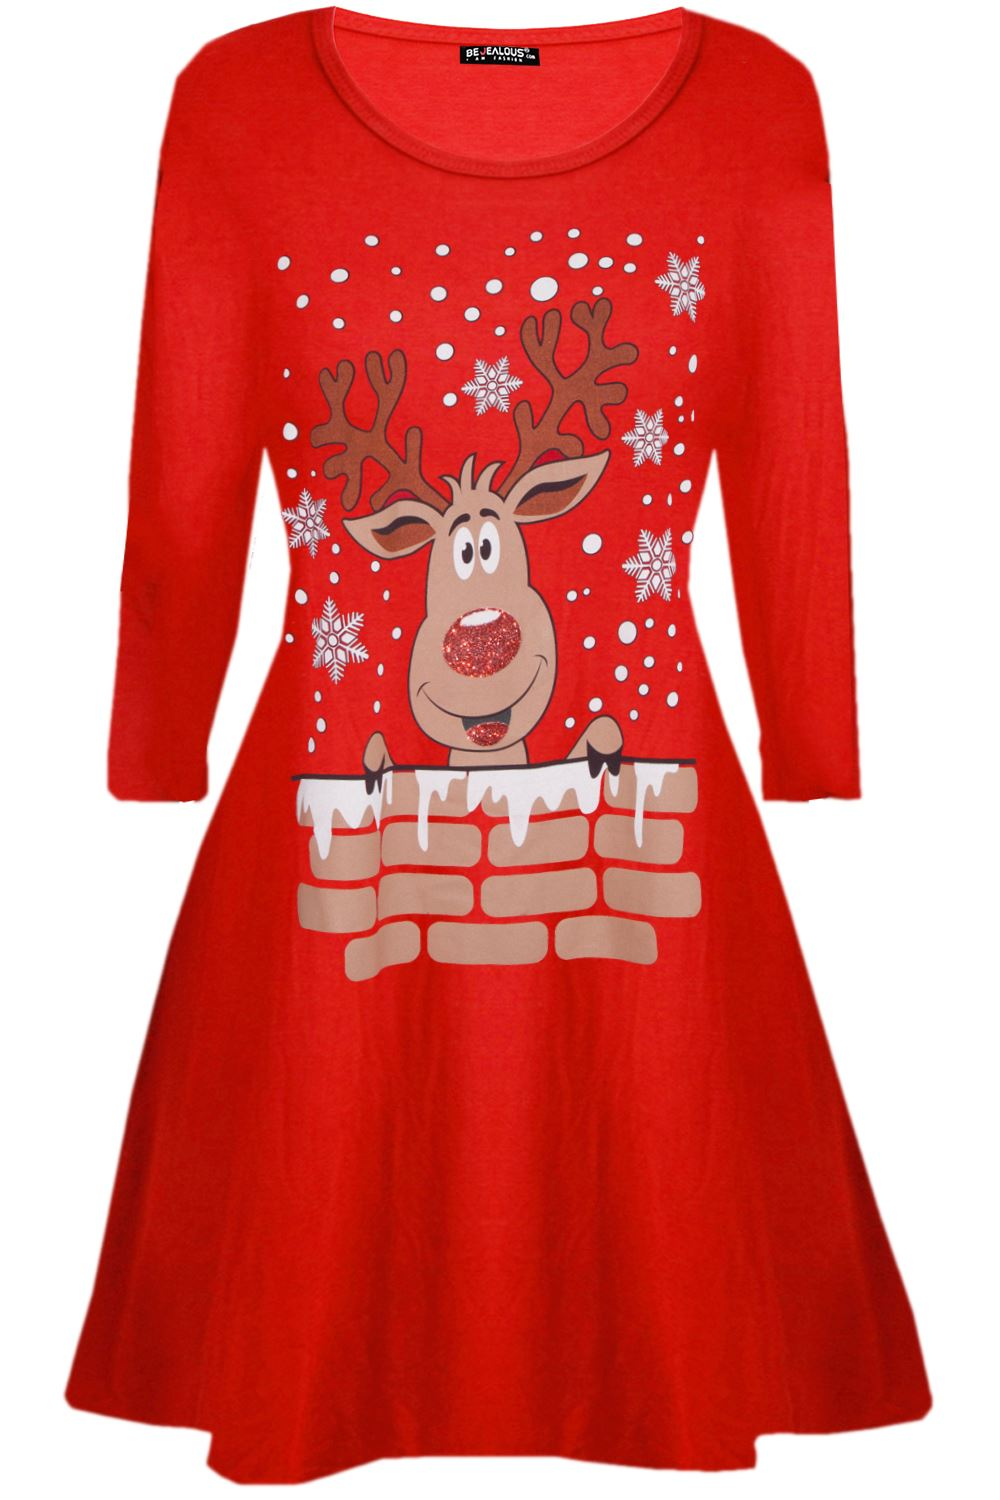 Womens-Ladies-Kids-Girls-Christmas-Xmas-Santa-Reindeer-Flared-Swing-Mini-Dress thumbnail 9